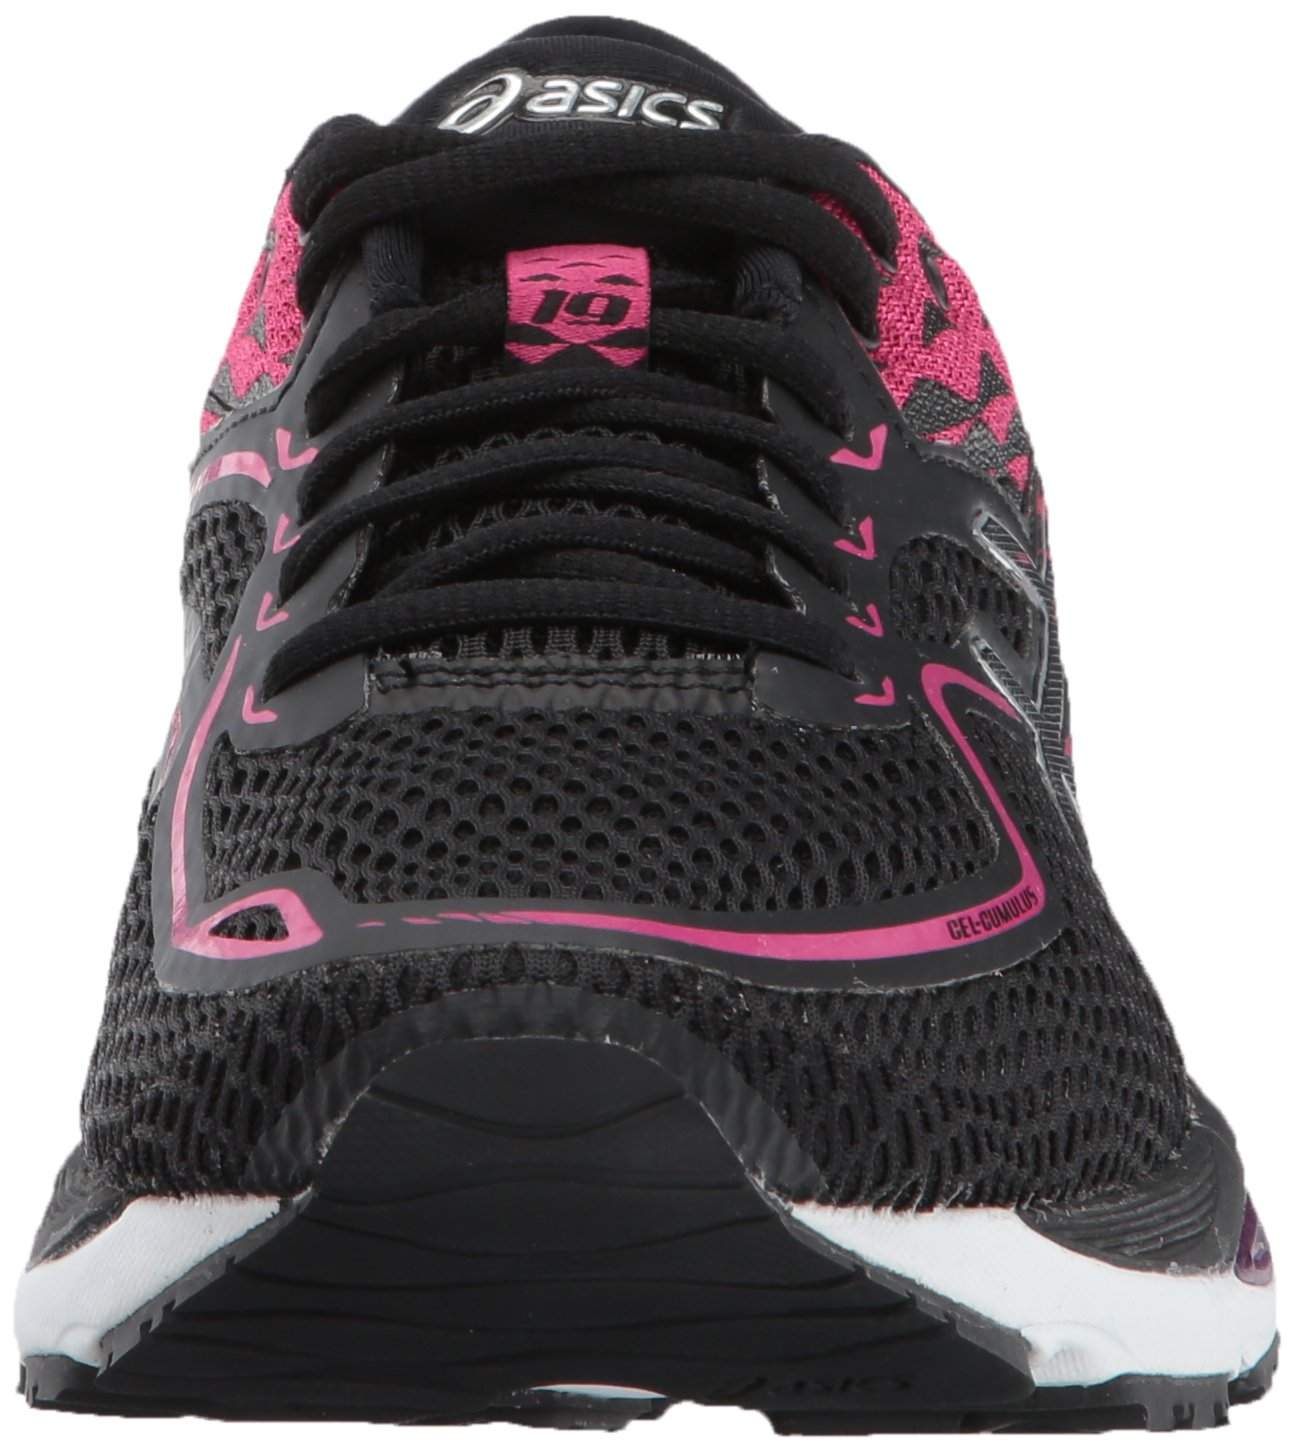 ASICS Women's Gel-Cumulus 19 Running Shoe B01N3Y3YDP 10 B(M) US|Black/Silver/Ink Peacoat